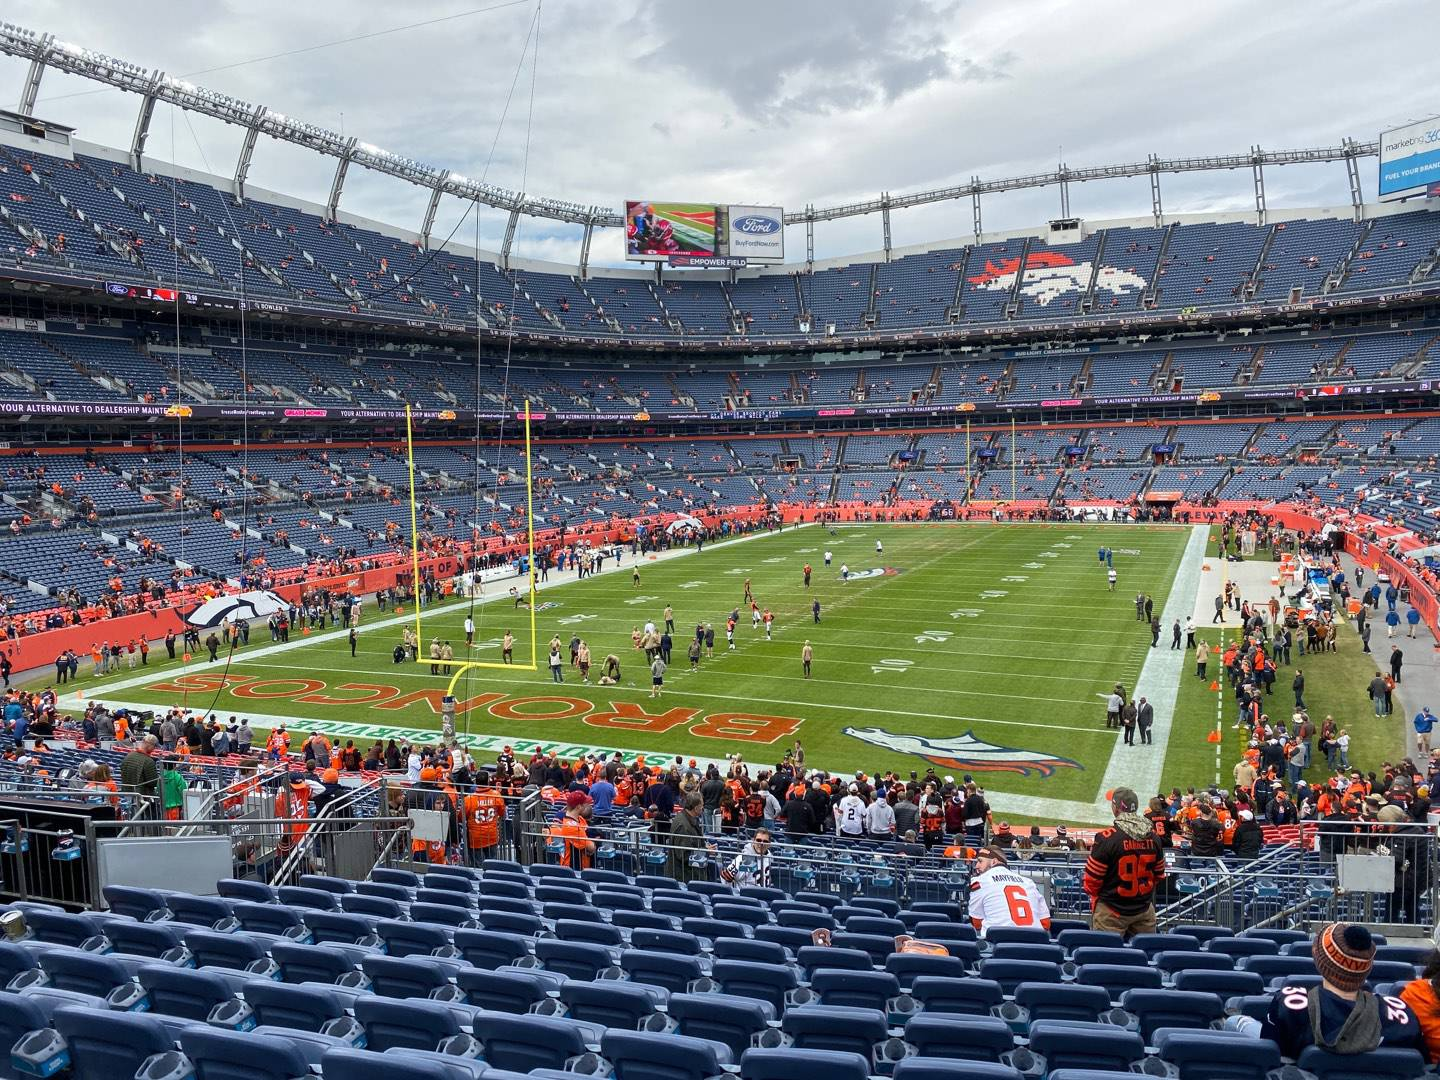 Empower Field at Mile High Stadium Section 130 Row 37 Seat 7